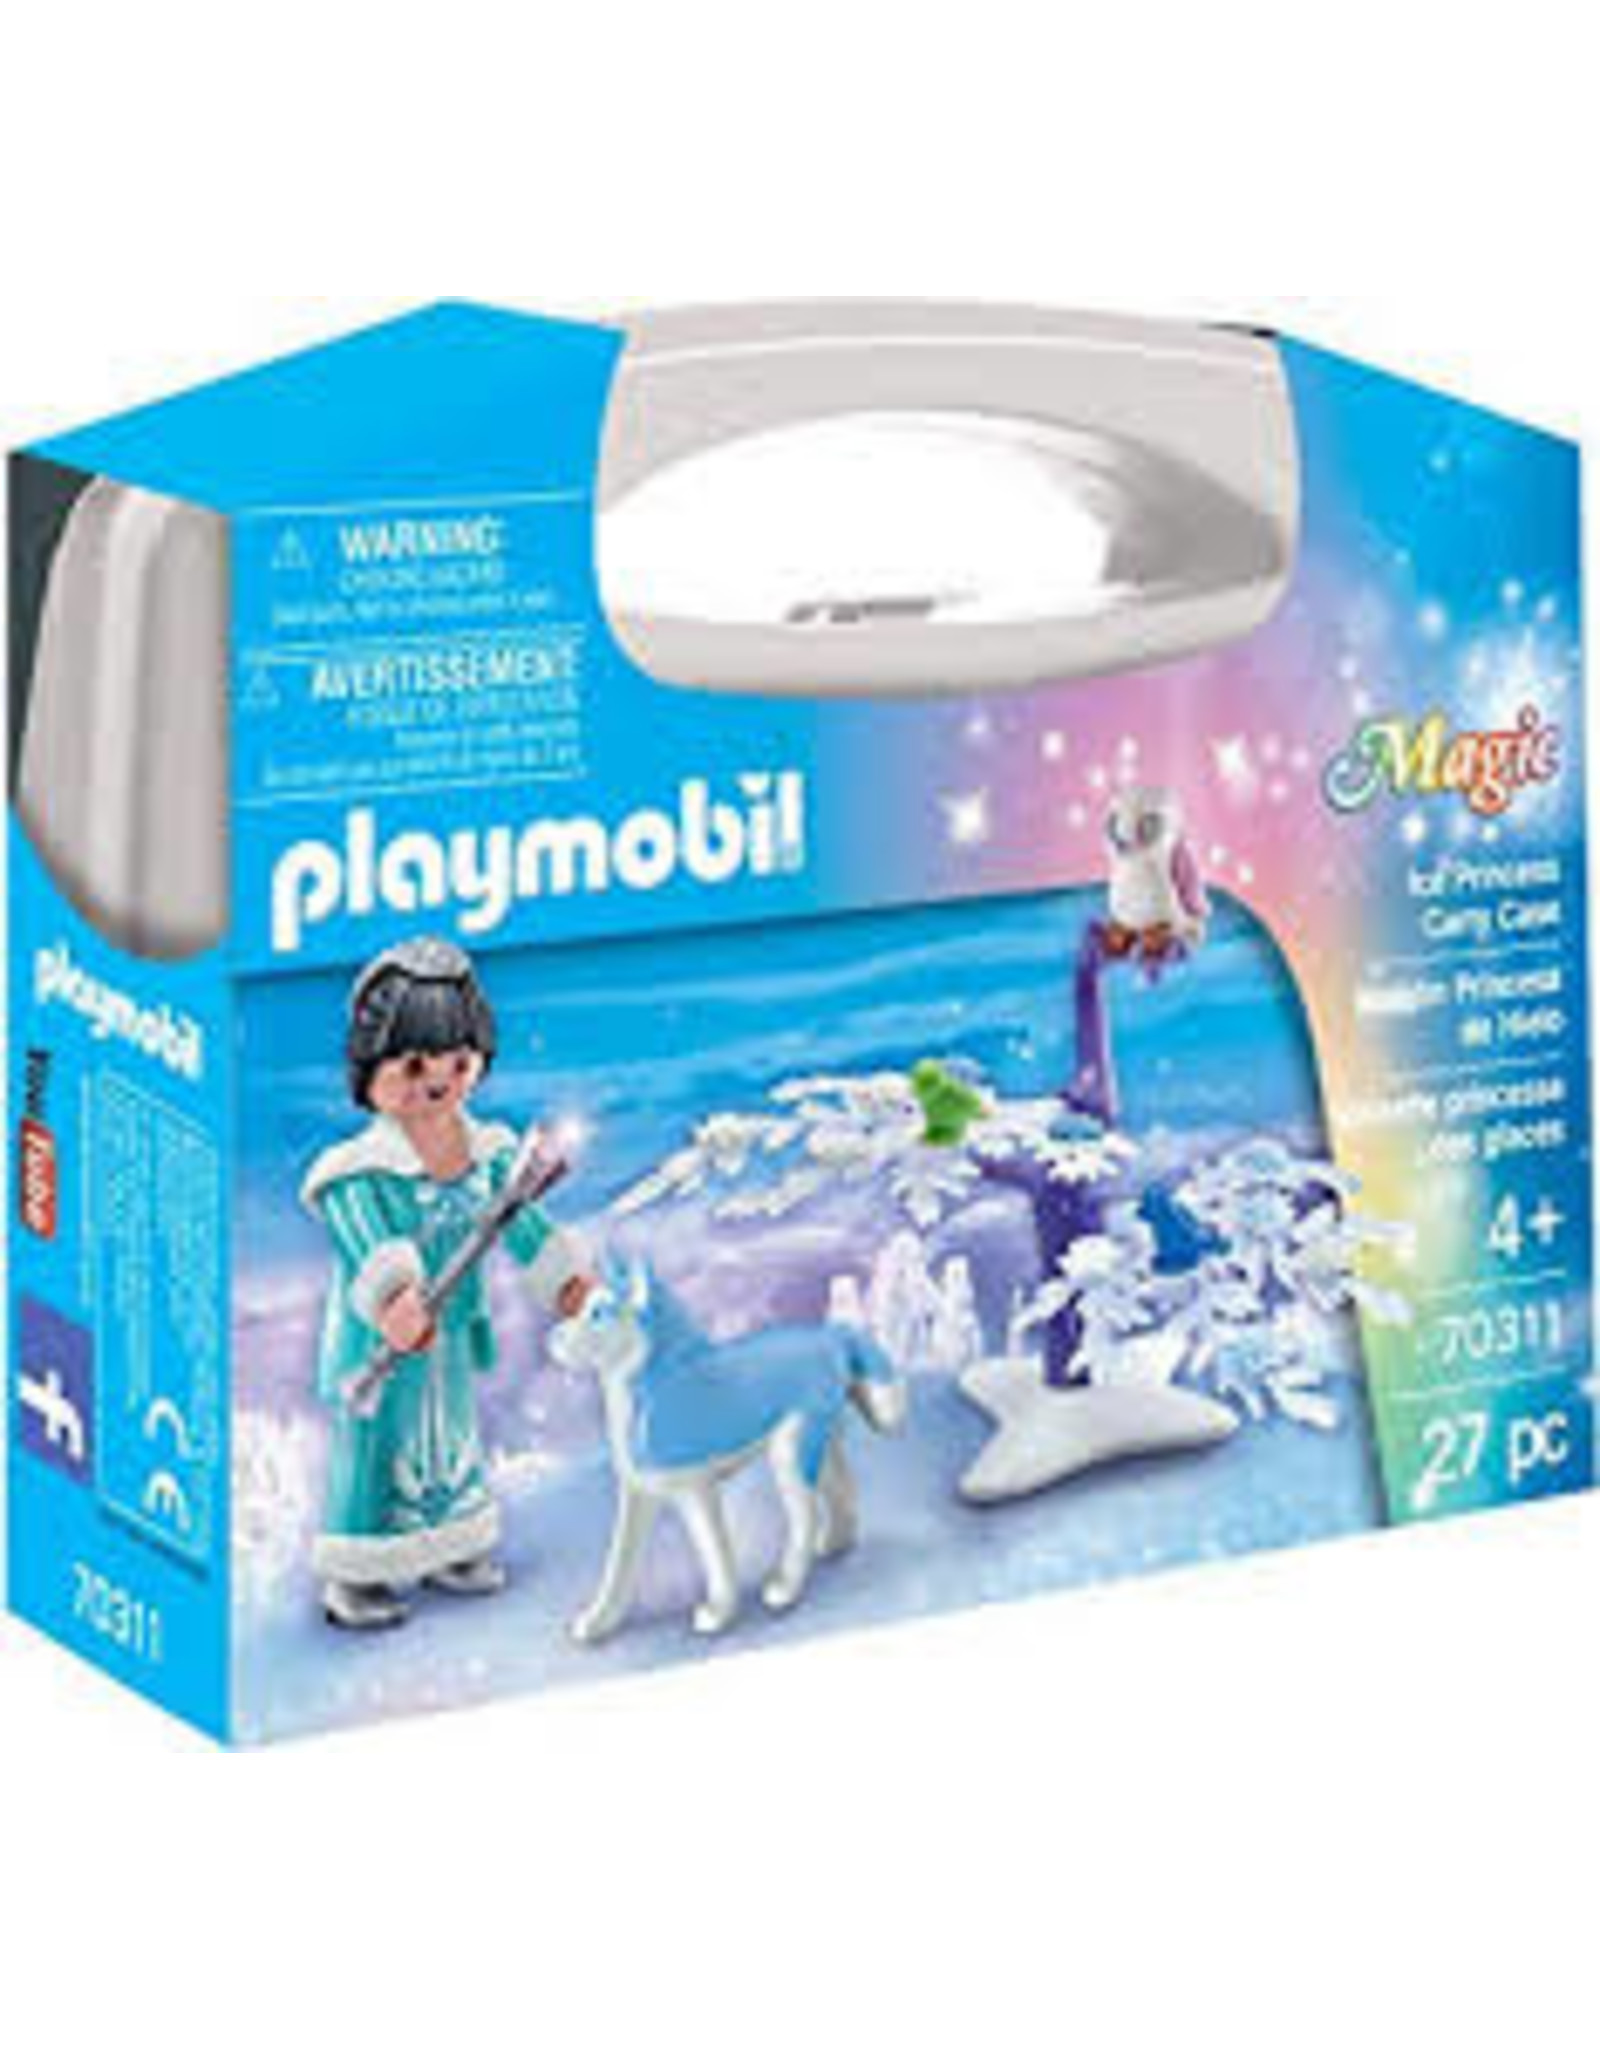 Playmobil Magic Ice Princess Carry Case